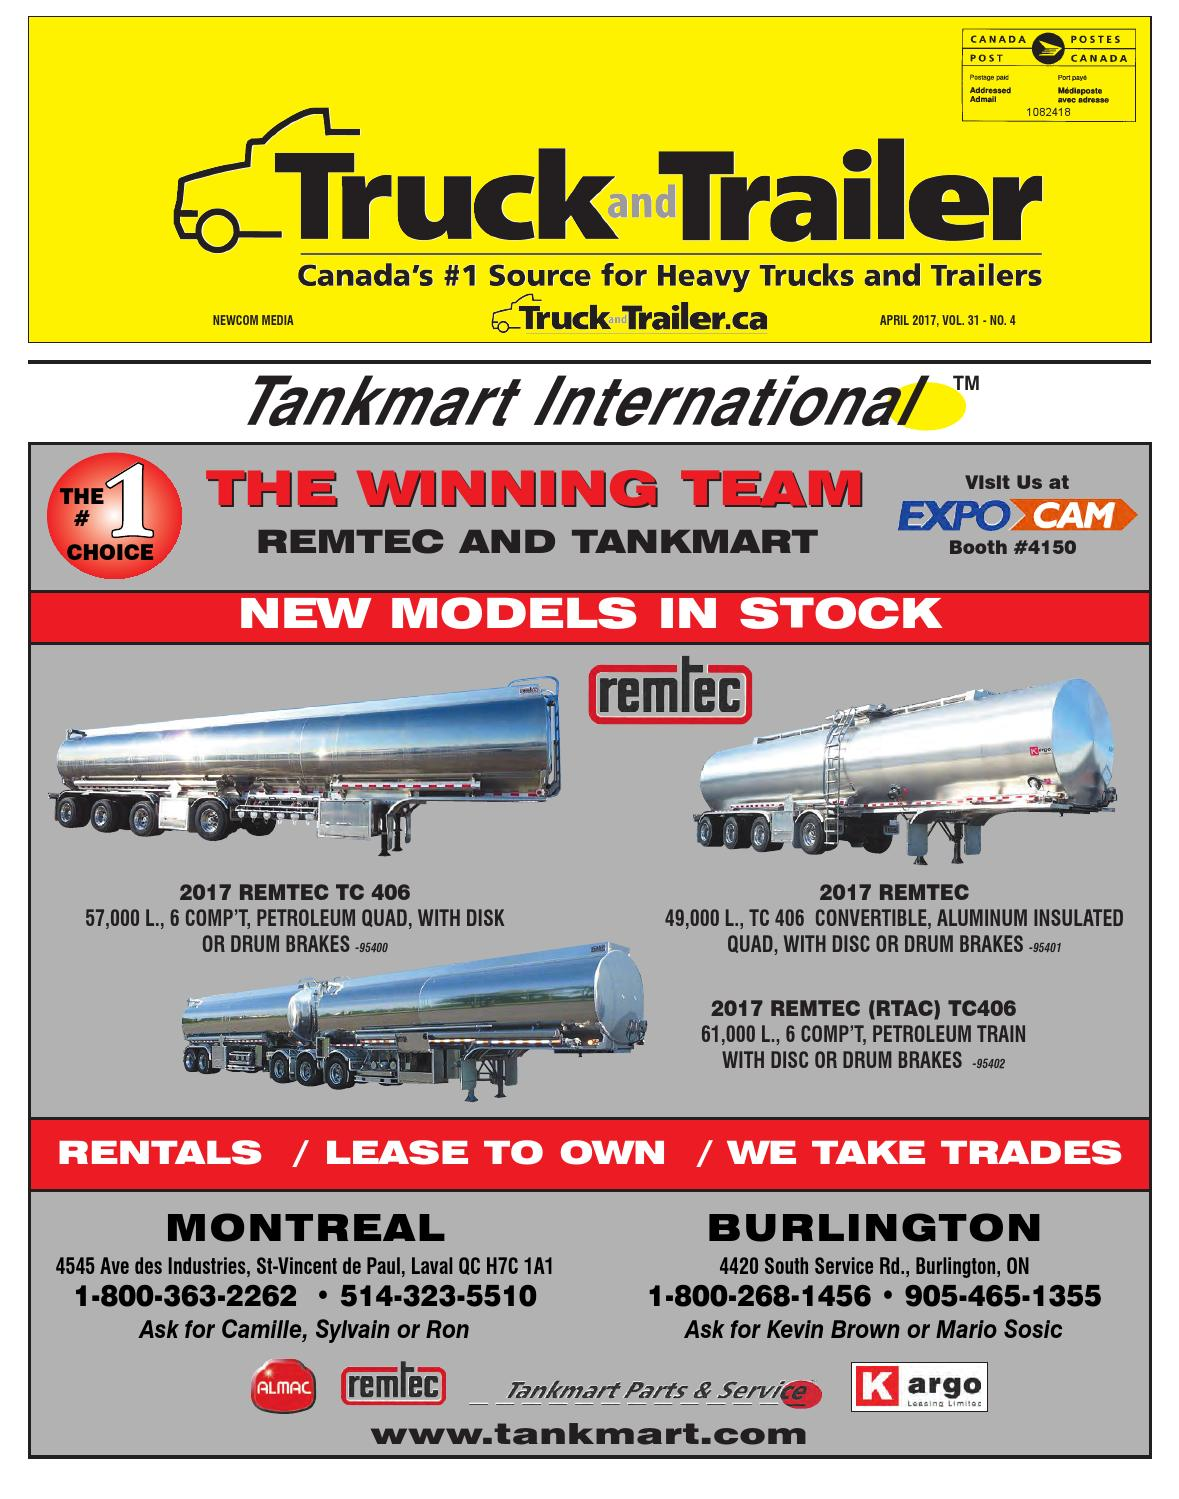 Truck And Trailer April 2017 By Annex Newcom Lp Issuu Michelin X Multi Z 295 80r225 Ban Truk